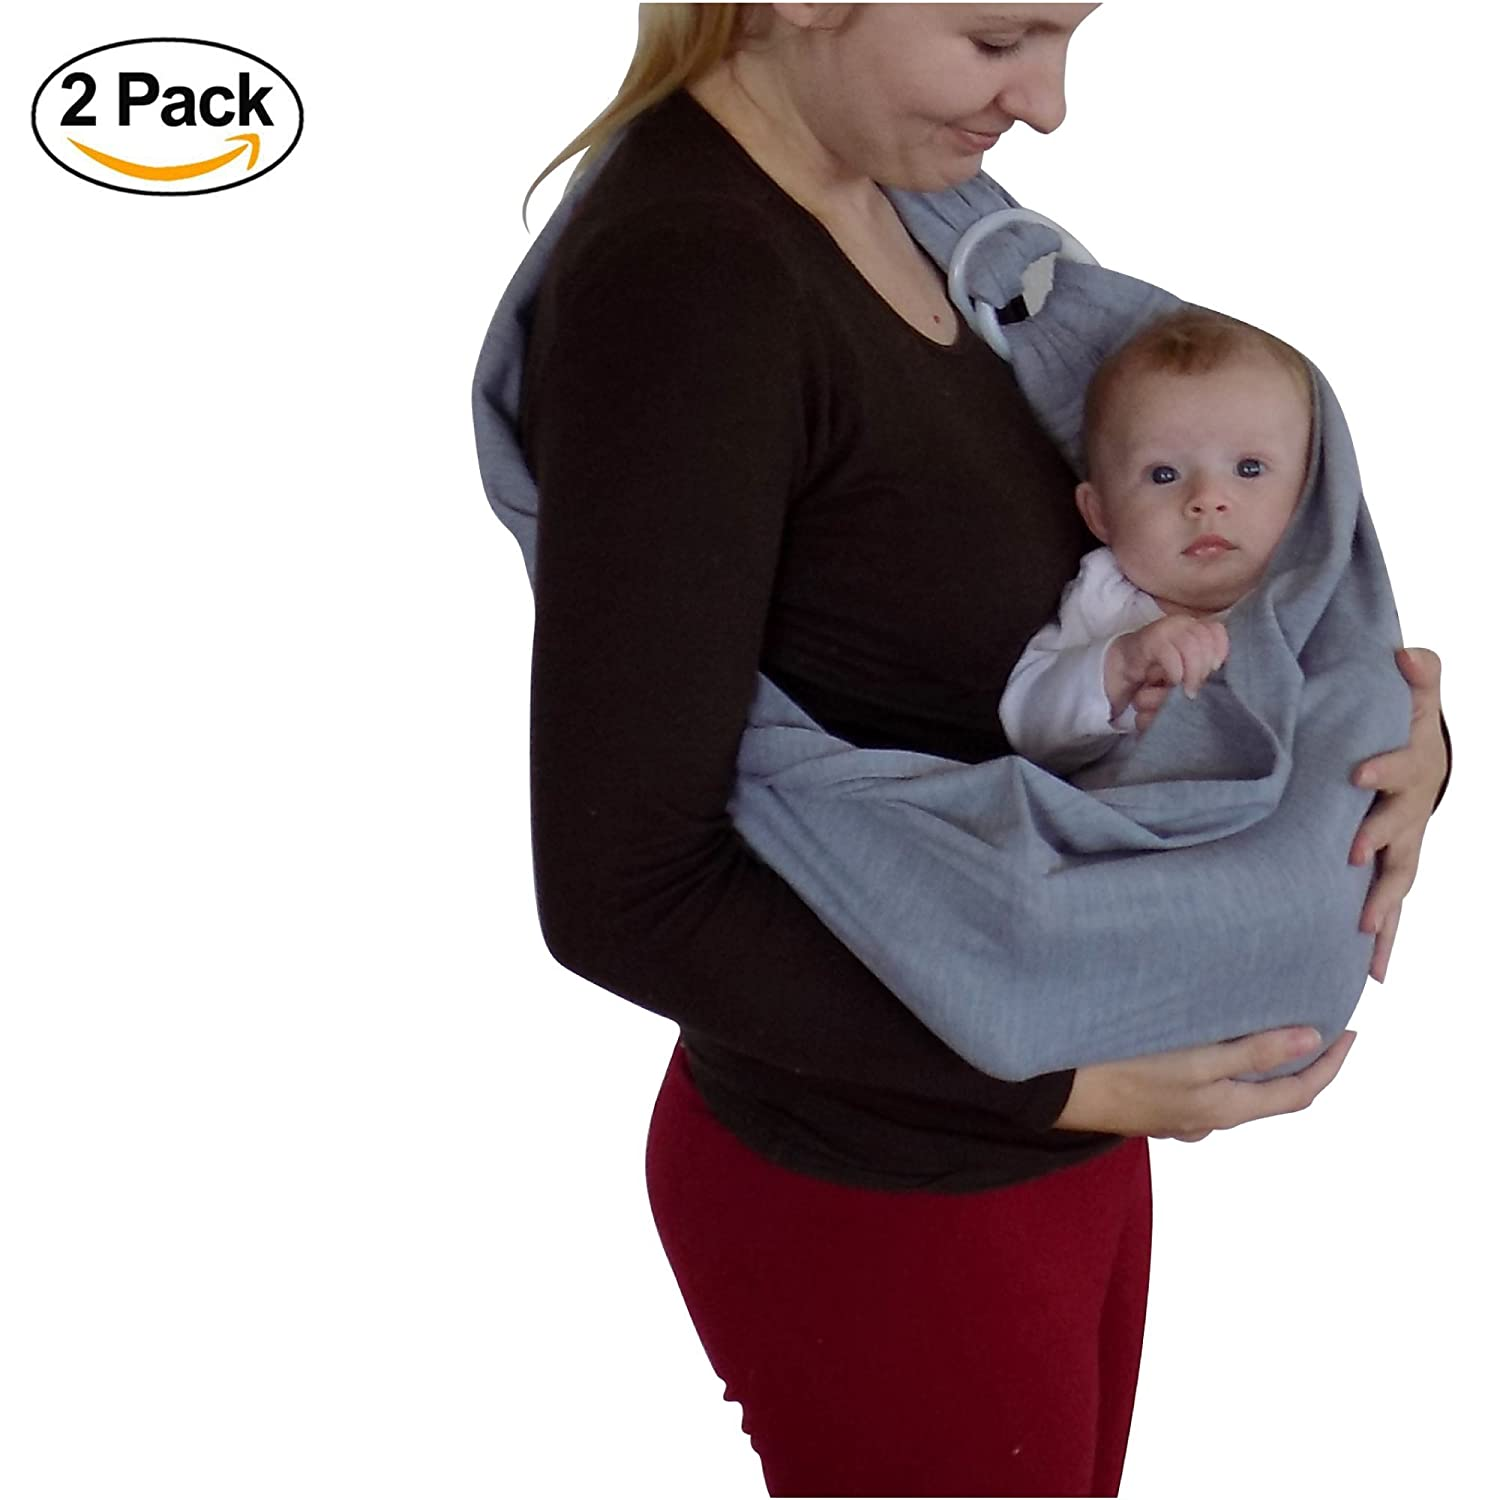 Baby Wrap Sling (2 Pack) 95% All Natural Cotton Baby Carrier for 0-36 Months by Catalina Creations